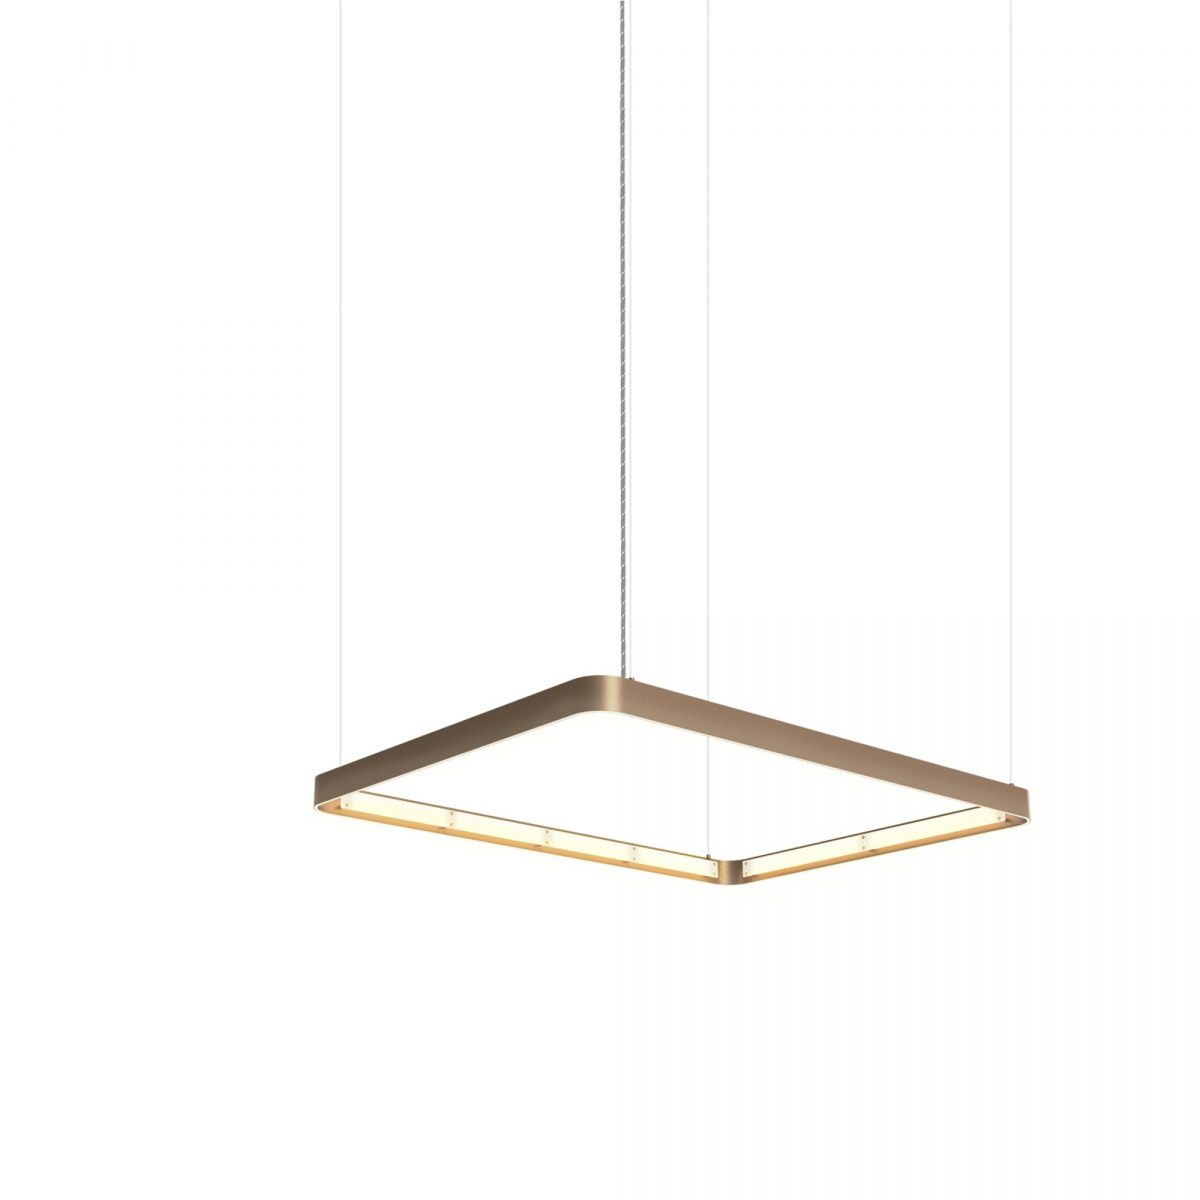 JSPR Eden Deco 75×100 Bronze Rectangle